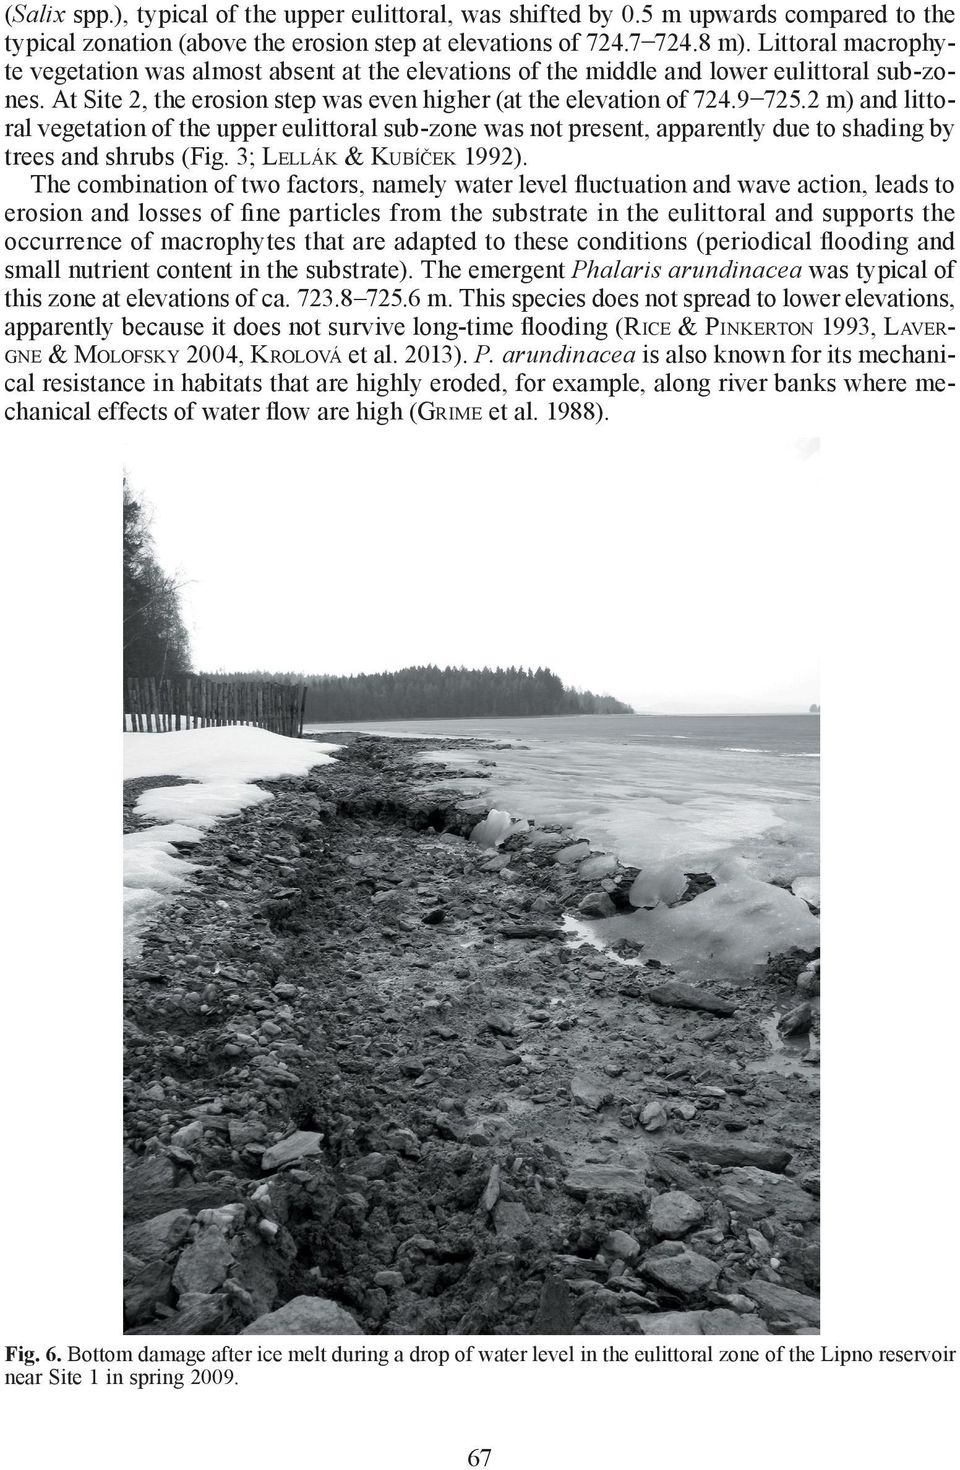 2 m) and littoral vegetation of the upper eulittoral sub-zone was not present, apparently due to shading by trees and shrubs (Fig. 3; LELLÁK & KUBÍČEK 1992).